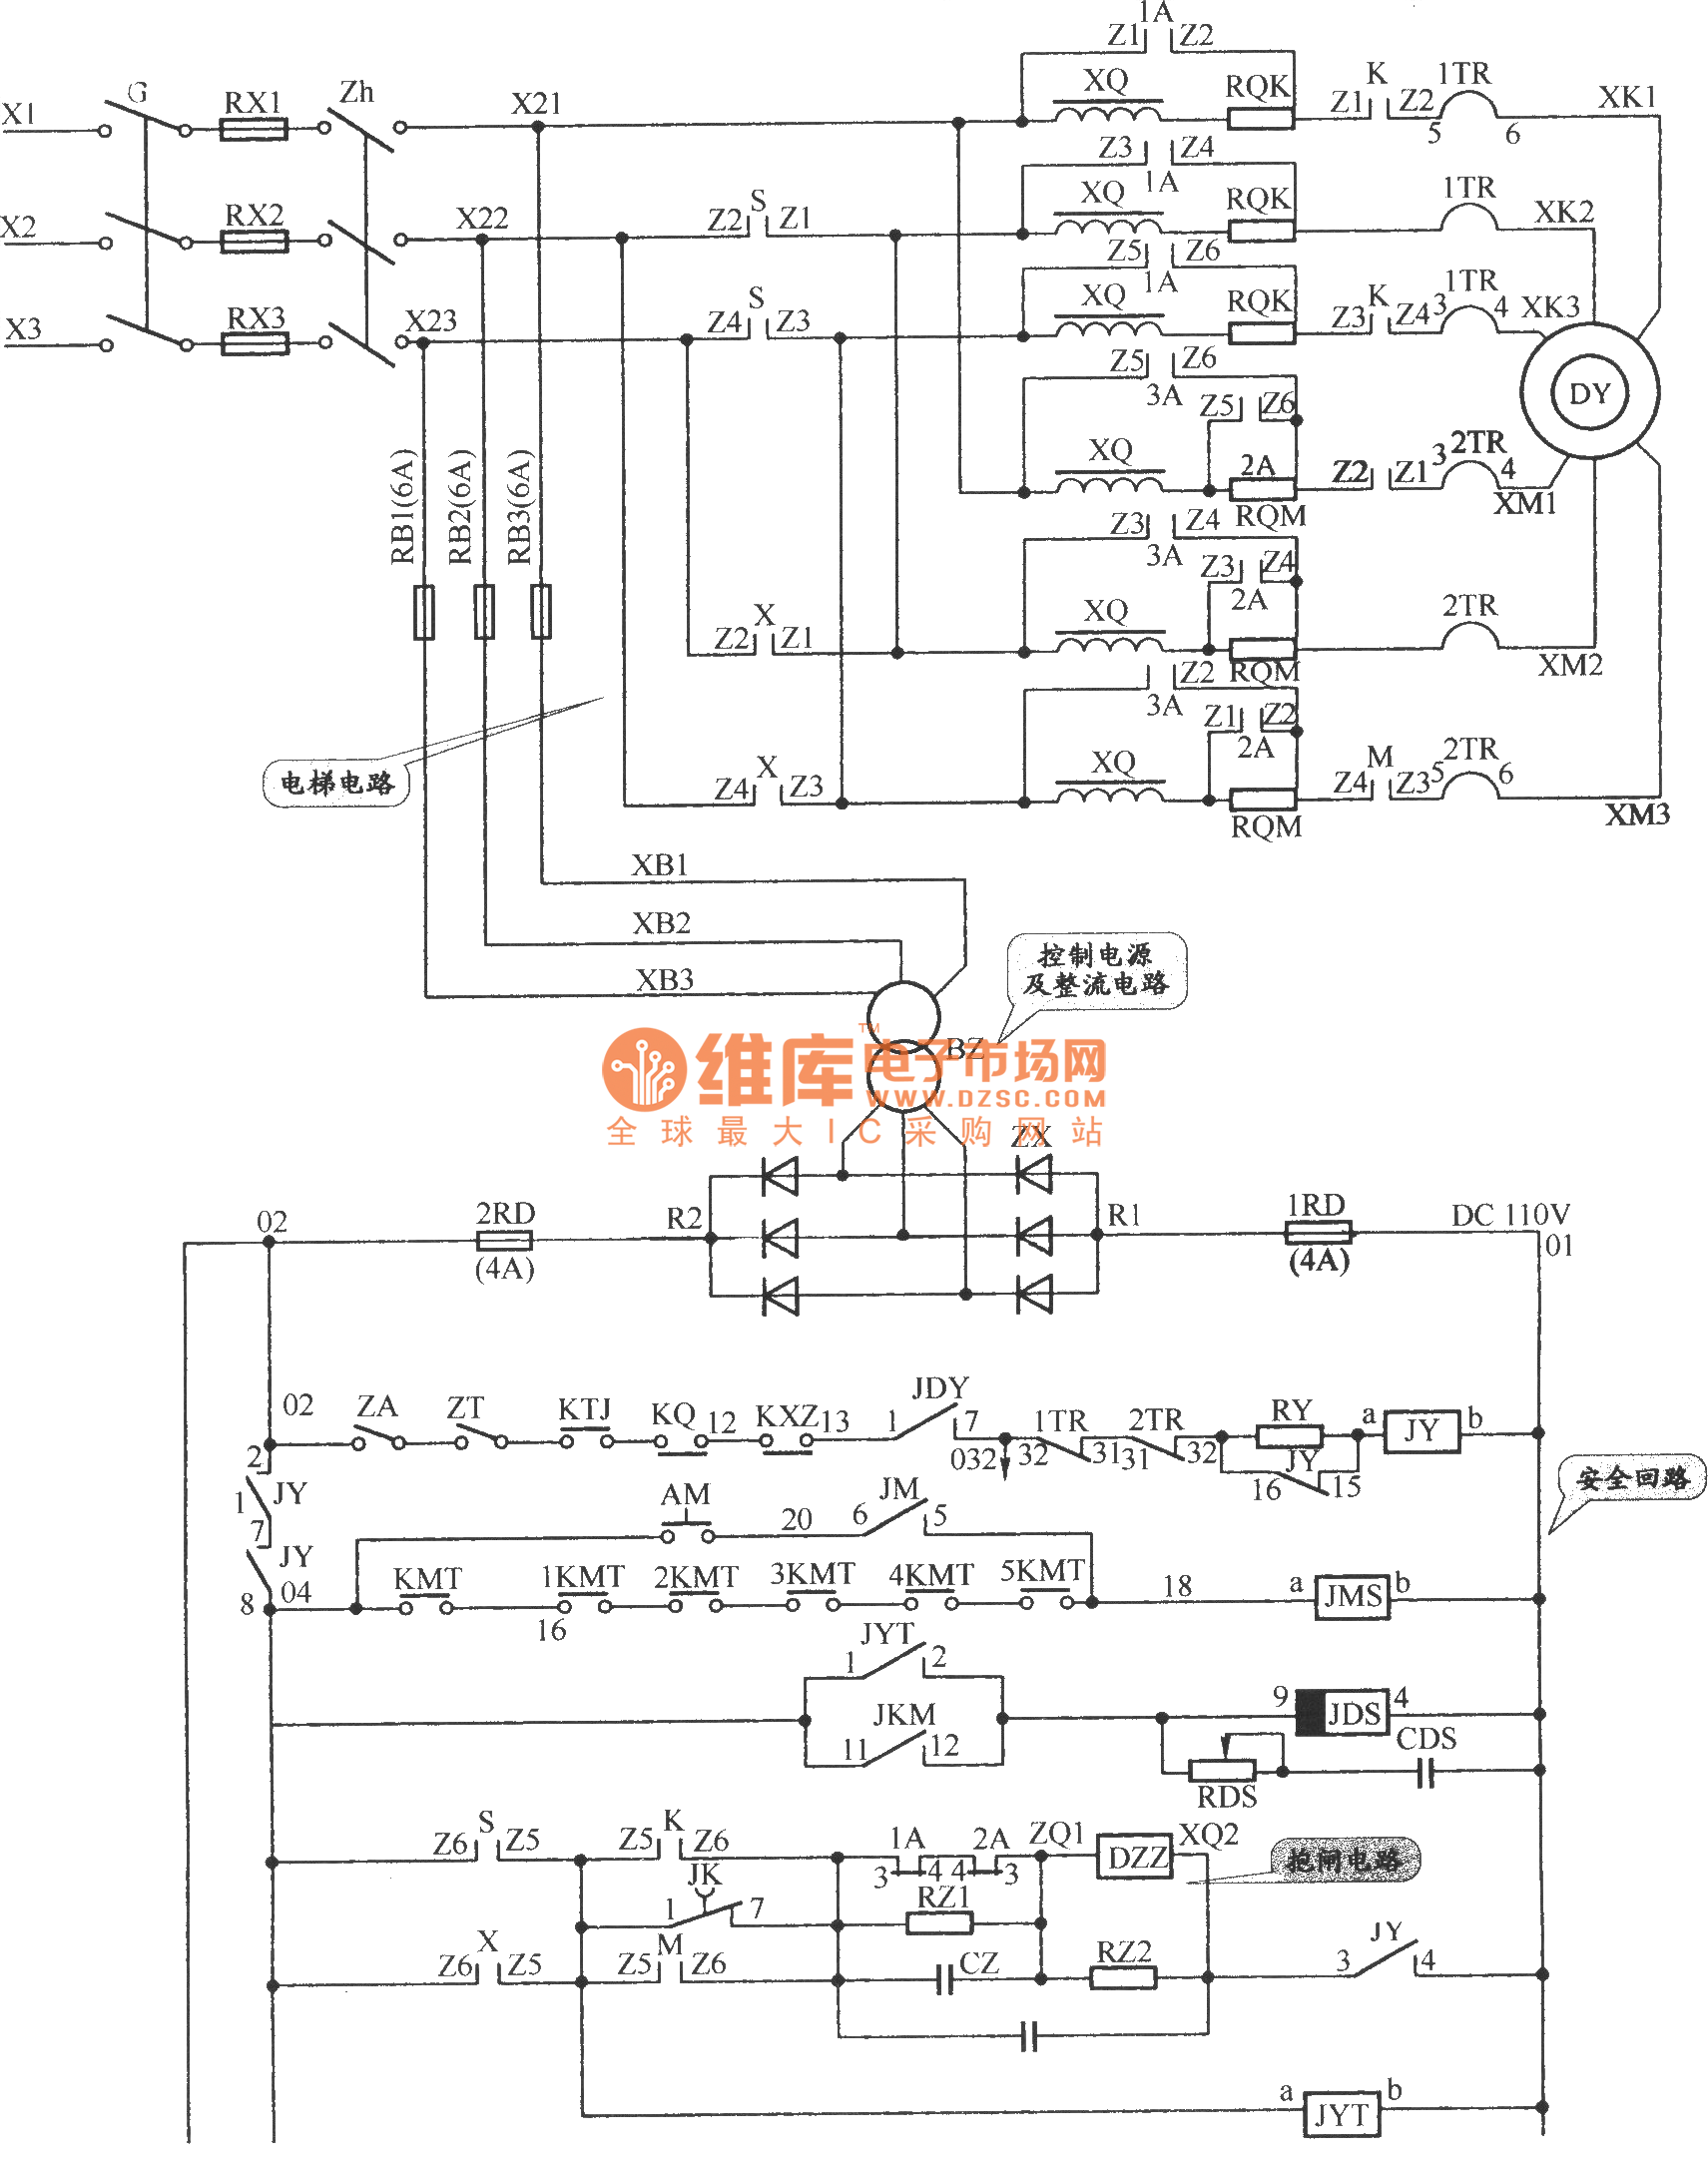 Apm 81 The Main Circuit Of Elevator Safety Loop And Dlectrical Index 104 Power Supply Diagram Seekiccom